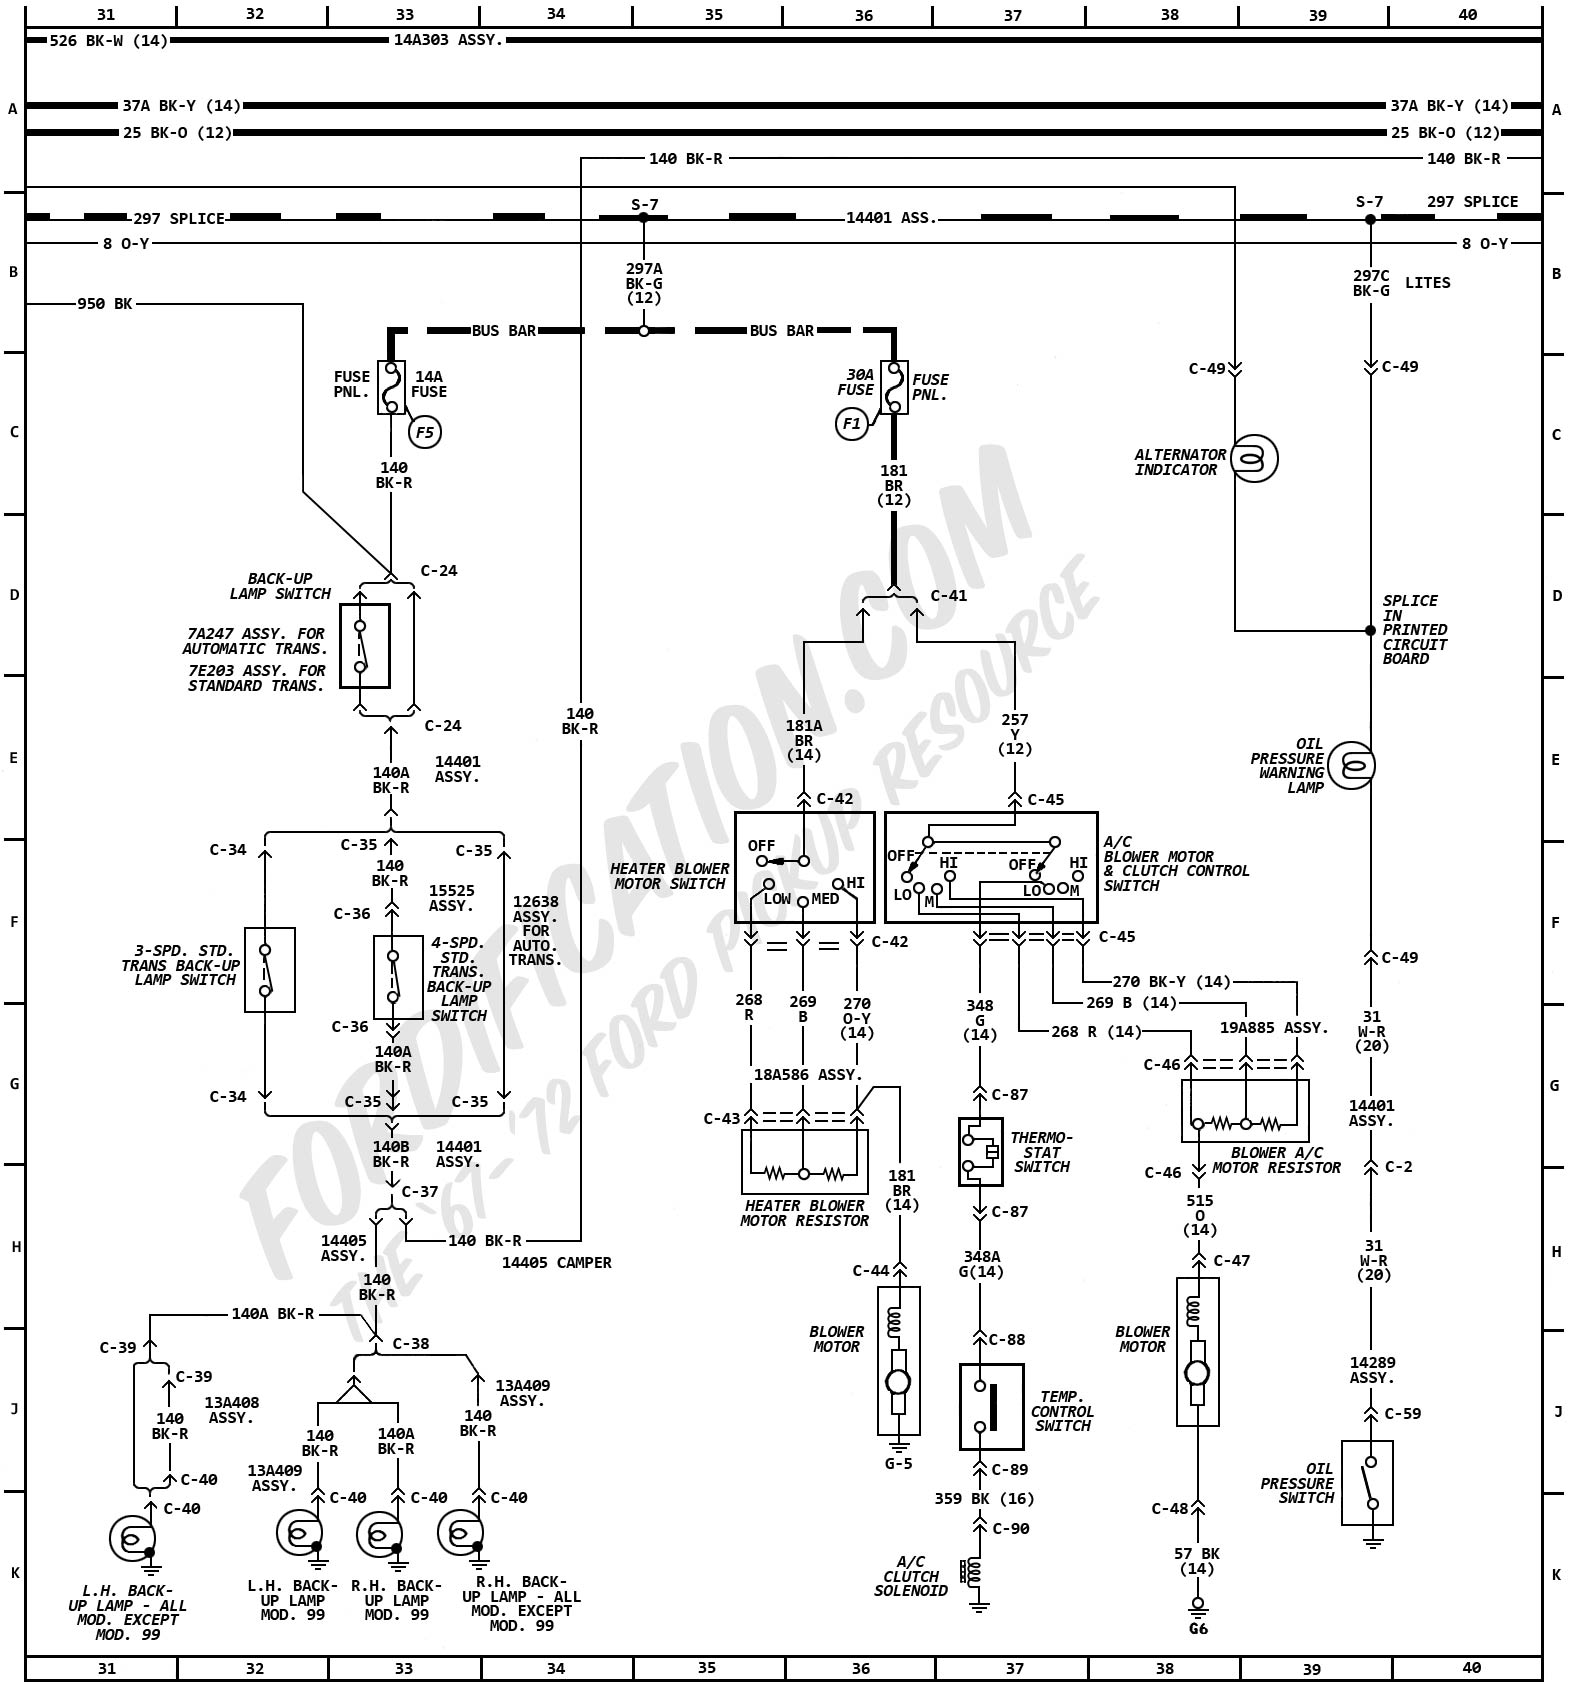 1987 Ford L8000 Wiring Diagram 30 Images Truck Diagrams 1972masterwiring 04 1972 Fordification Com At Cita